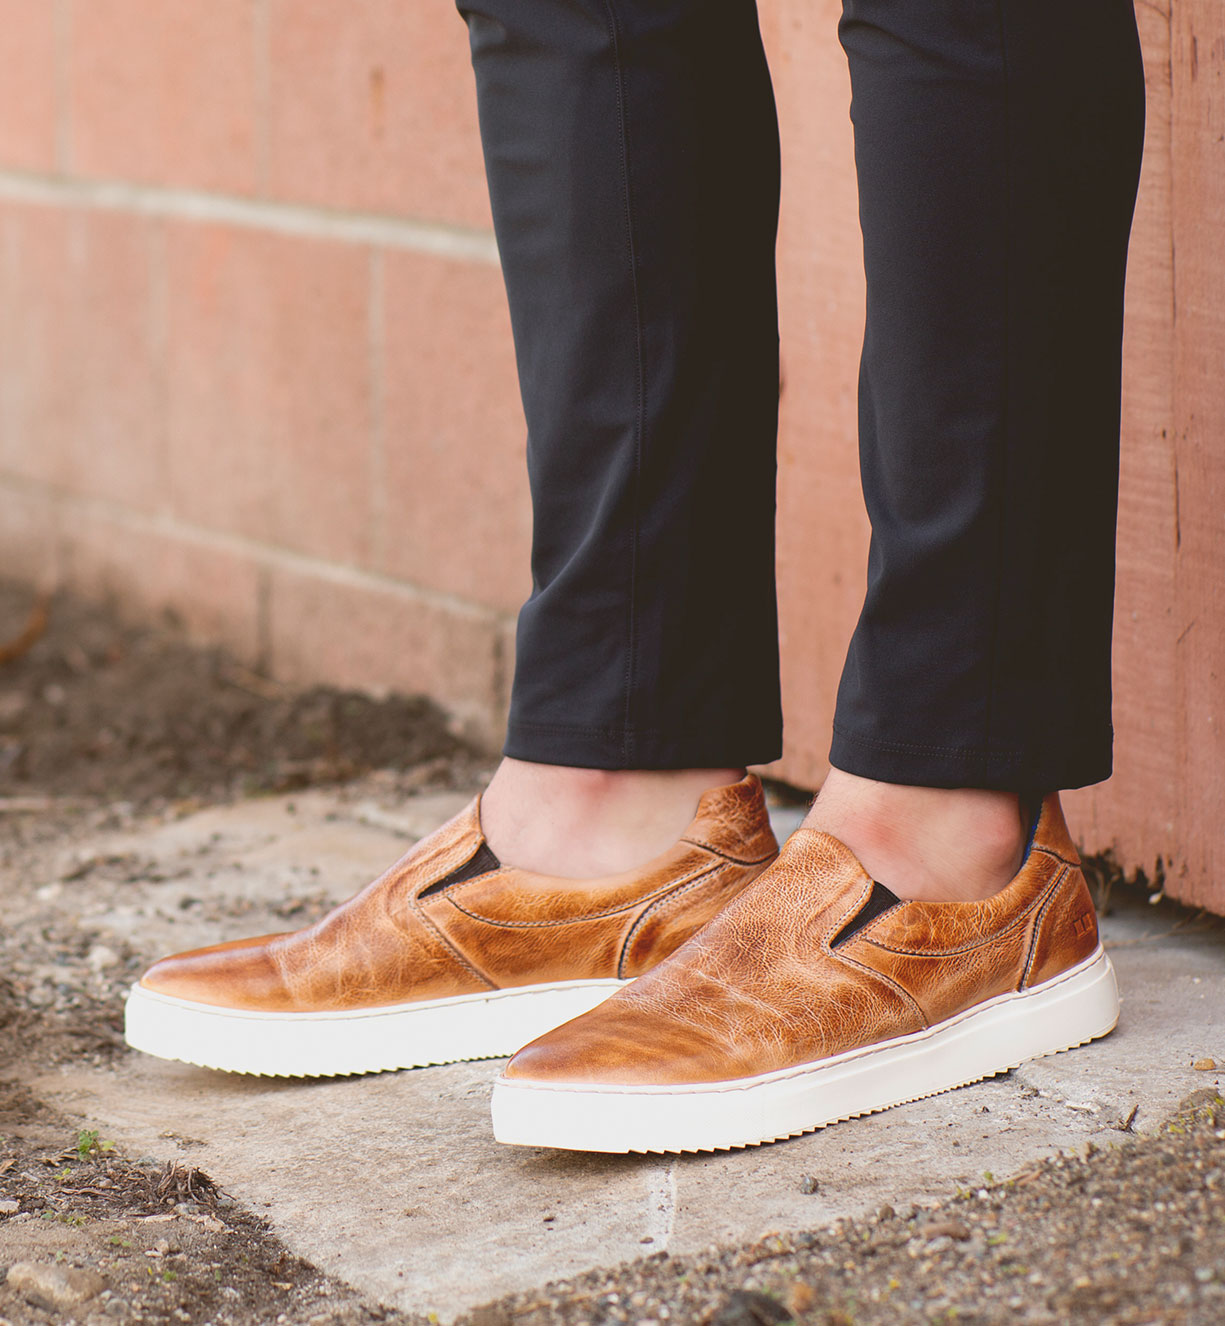 men's wearing tan colored shoes sneakers